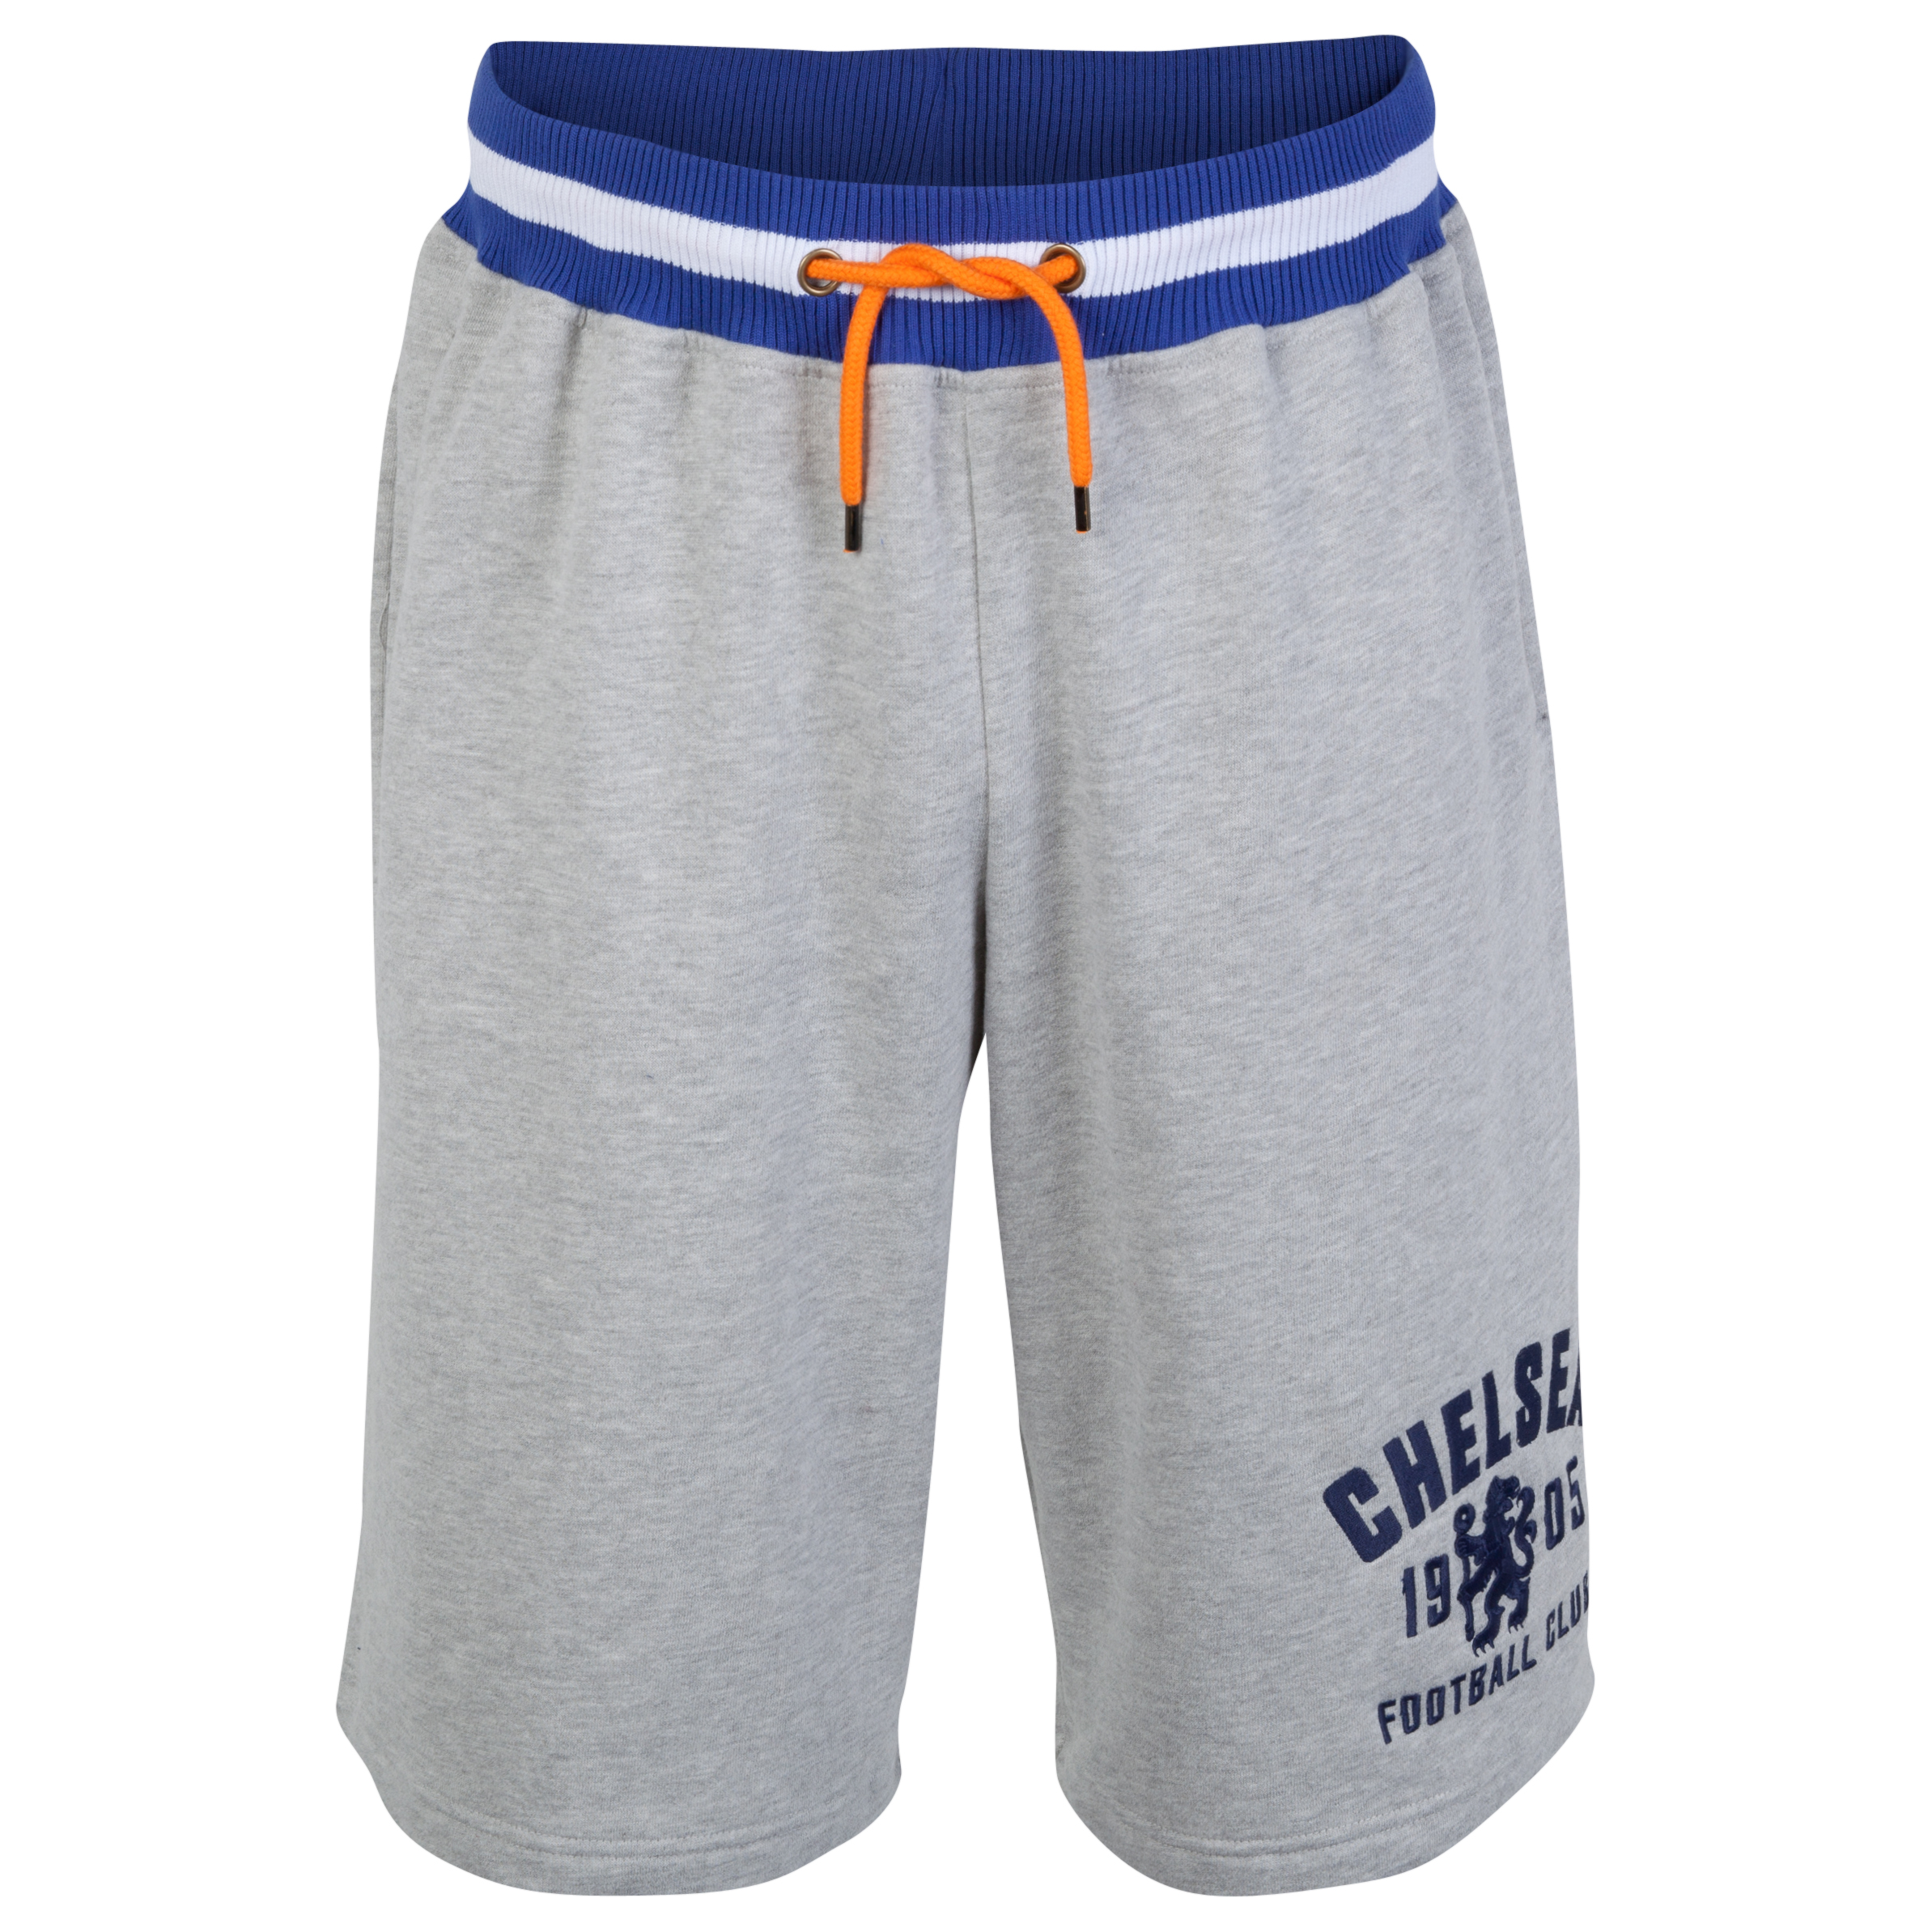 Chelsea Heritage Fleece Jog Shorts - Mens Grey